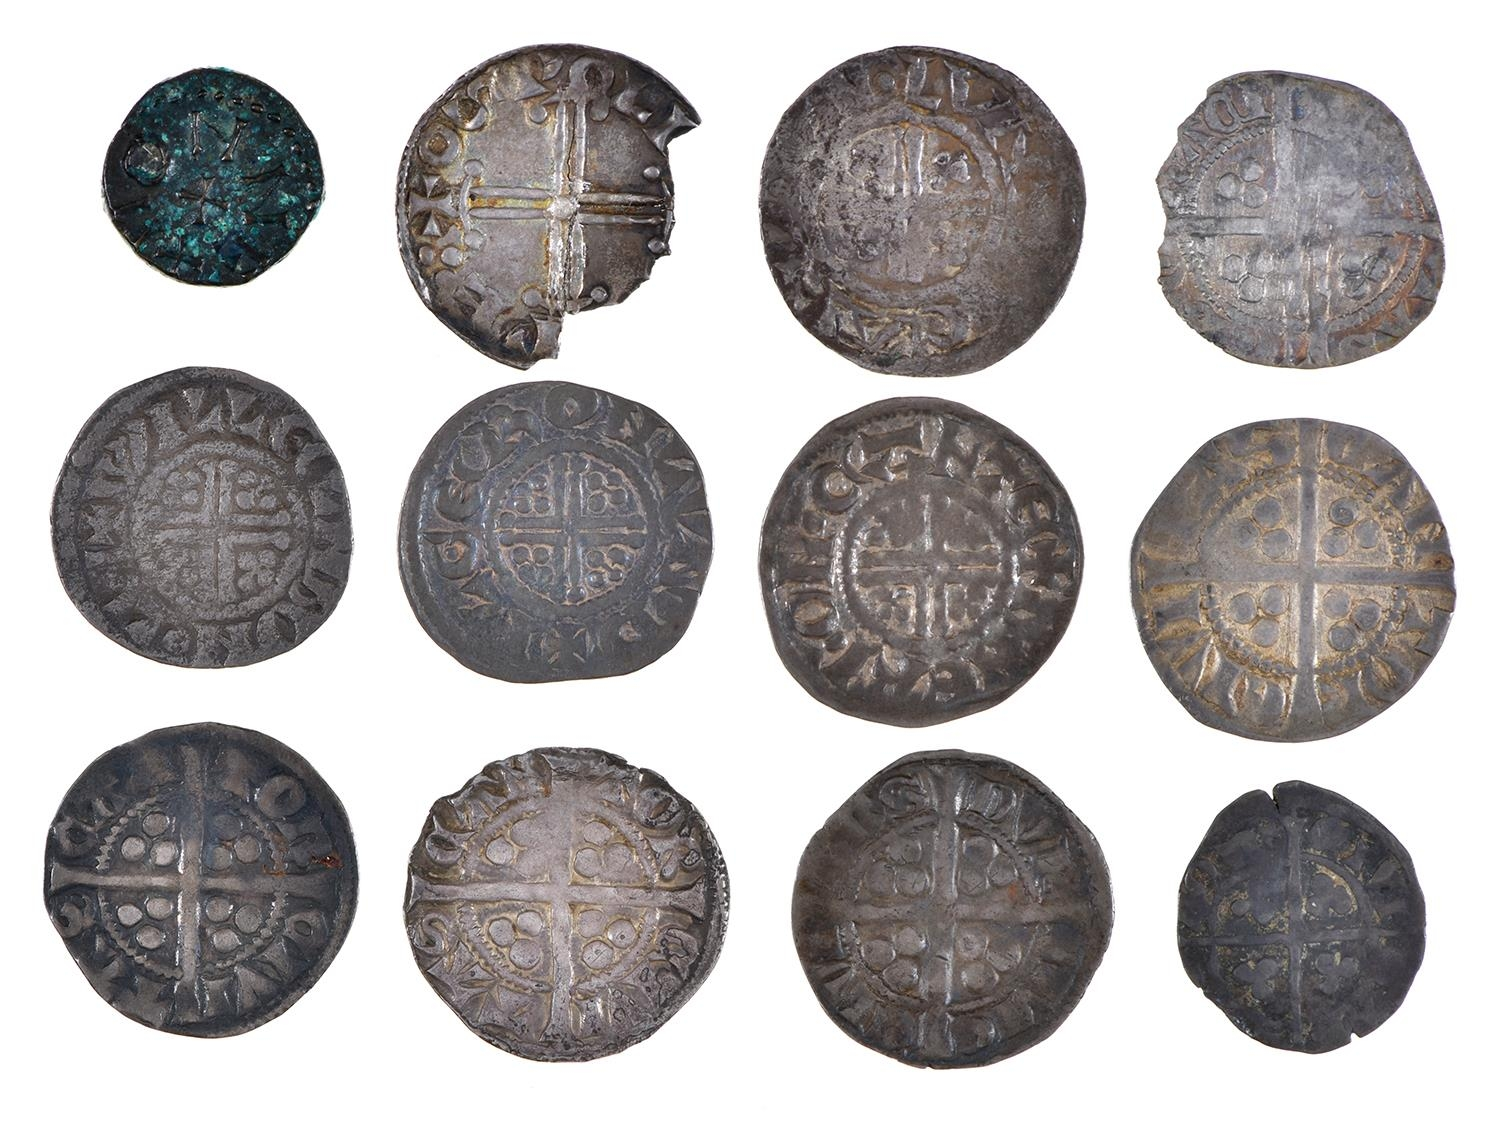 England, Anglo-Saxons, Aethelred II, Ae Sceat, MONNE, (ex-Seaby 85/- 1966), some verdigris, very - Image 2 of 2